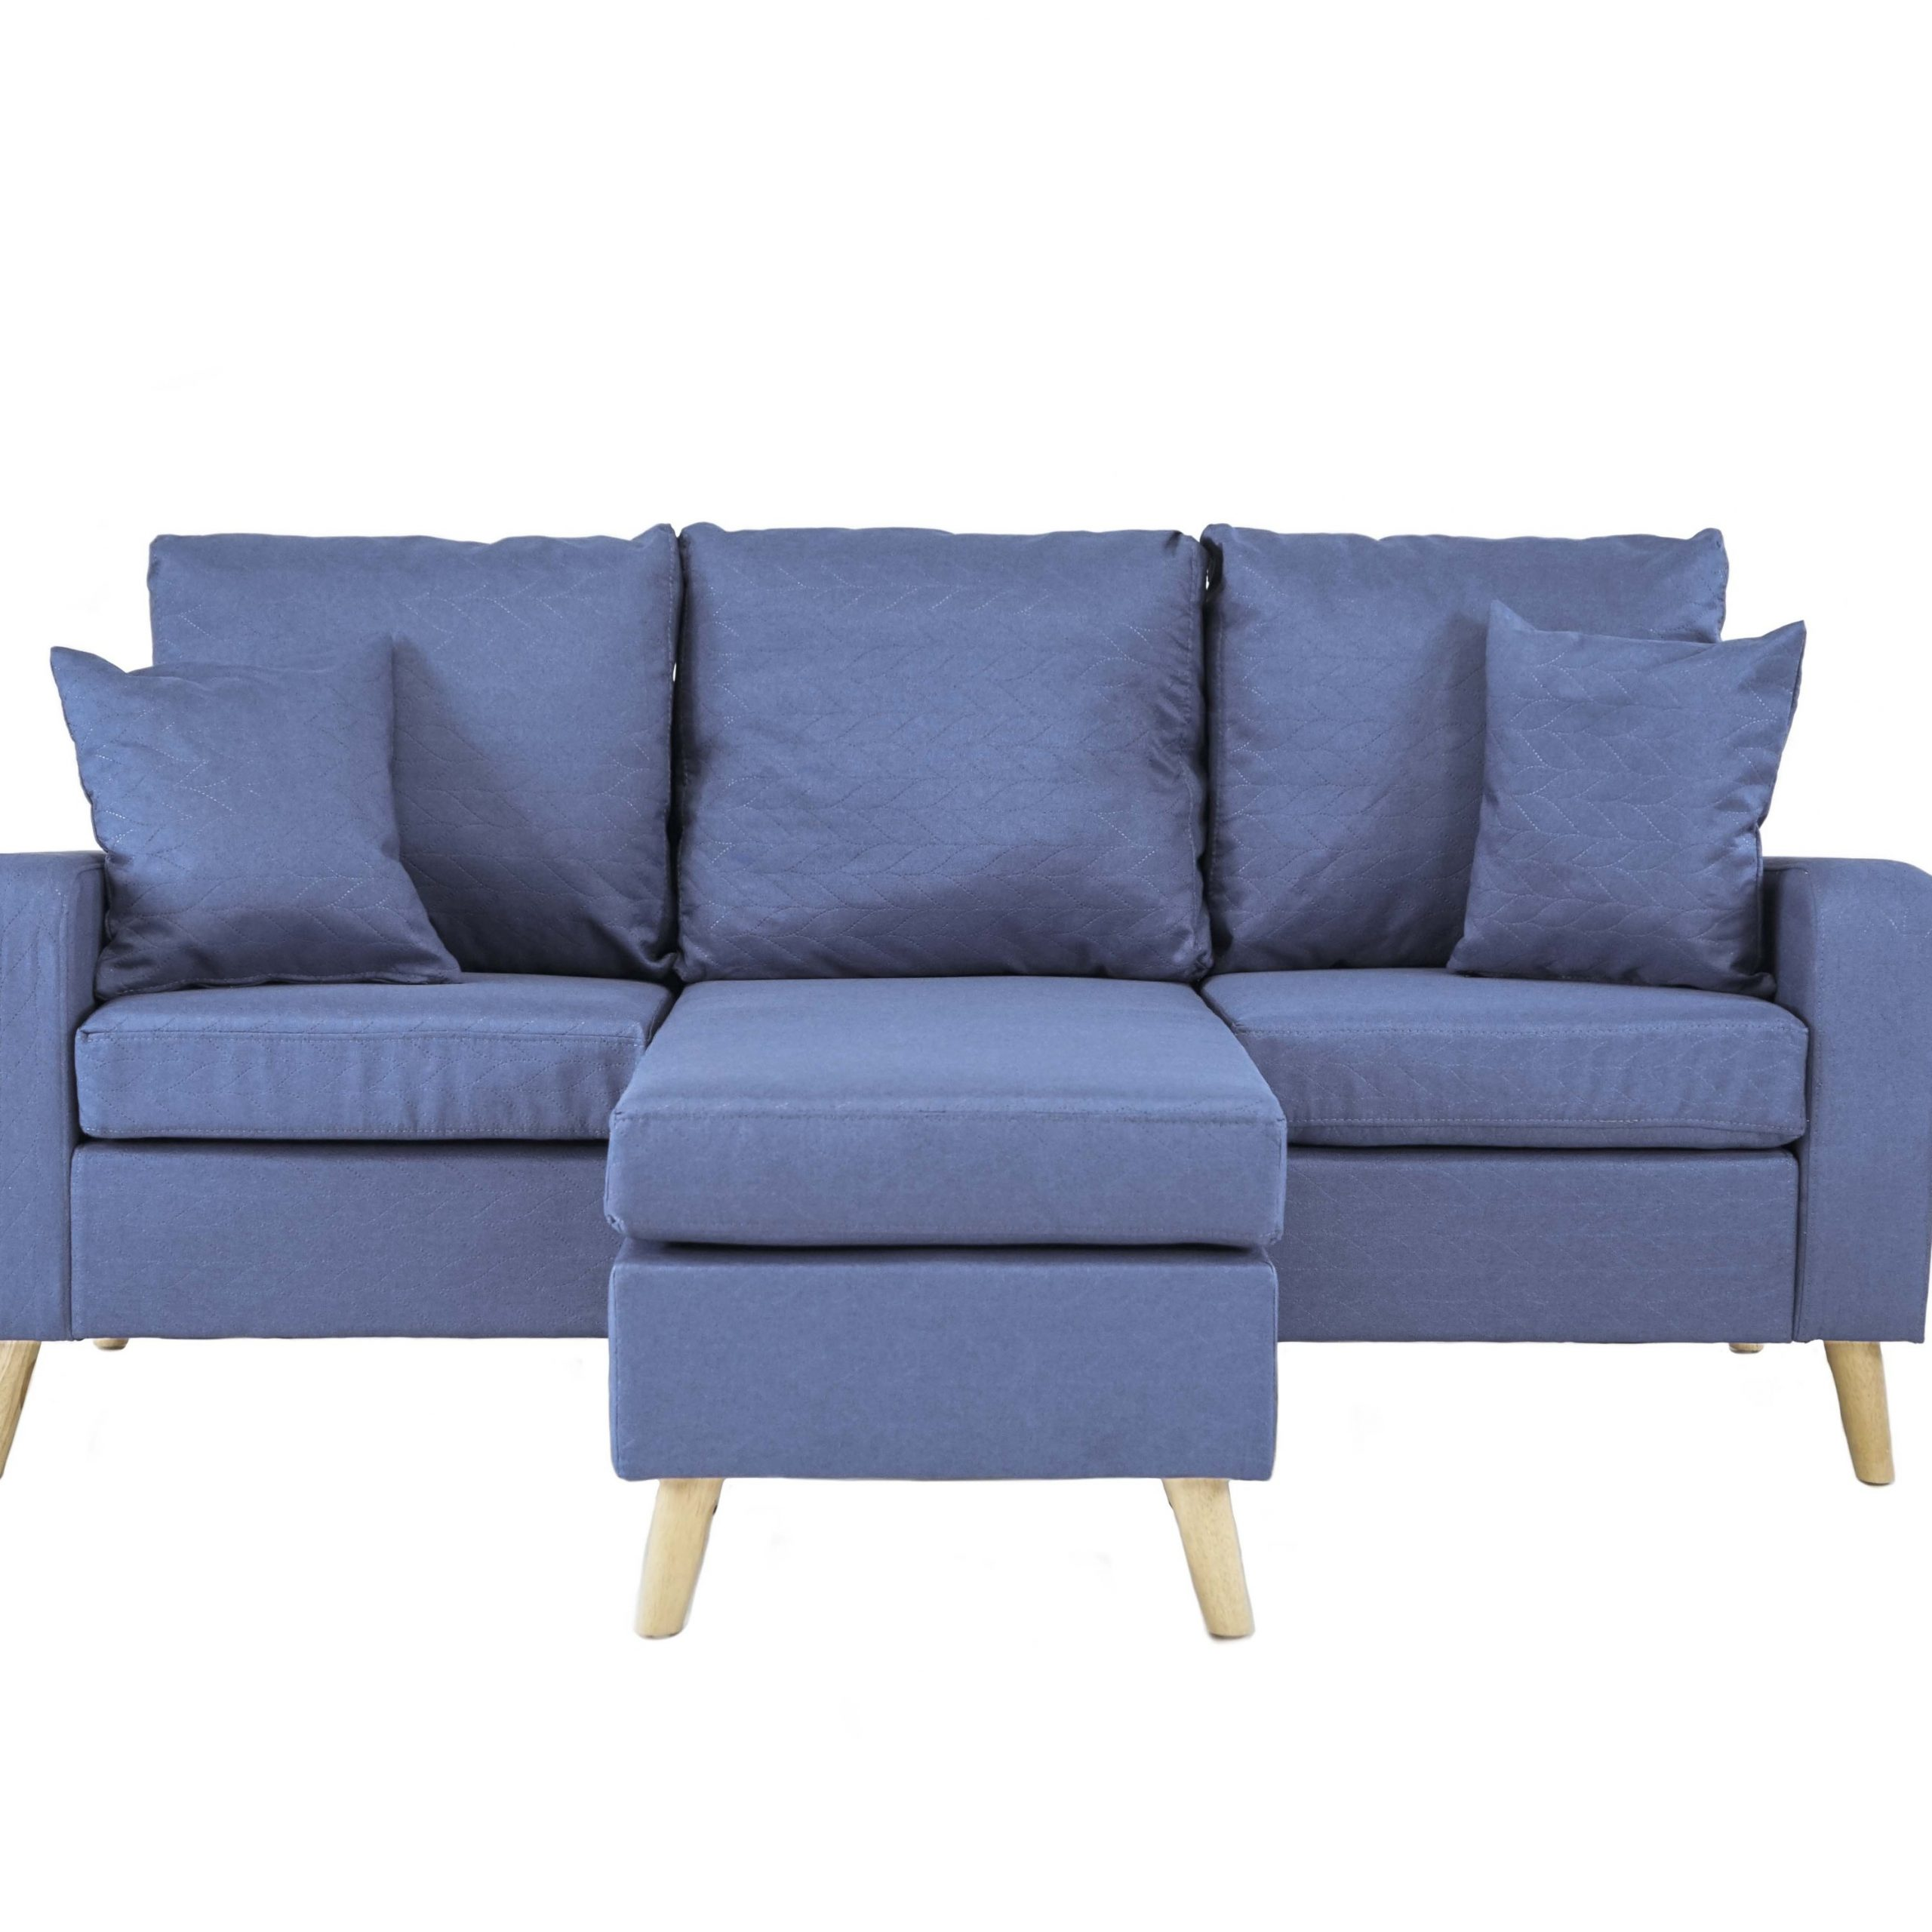 Light Blue Small Space Furniture Sectional Sofa With Inside Dulce Mid Century Chaise Sofas Dark Blue (View 2 of 15)